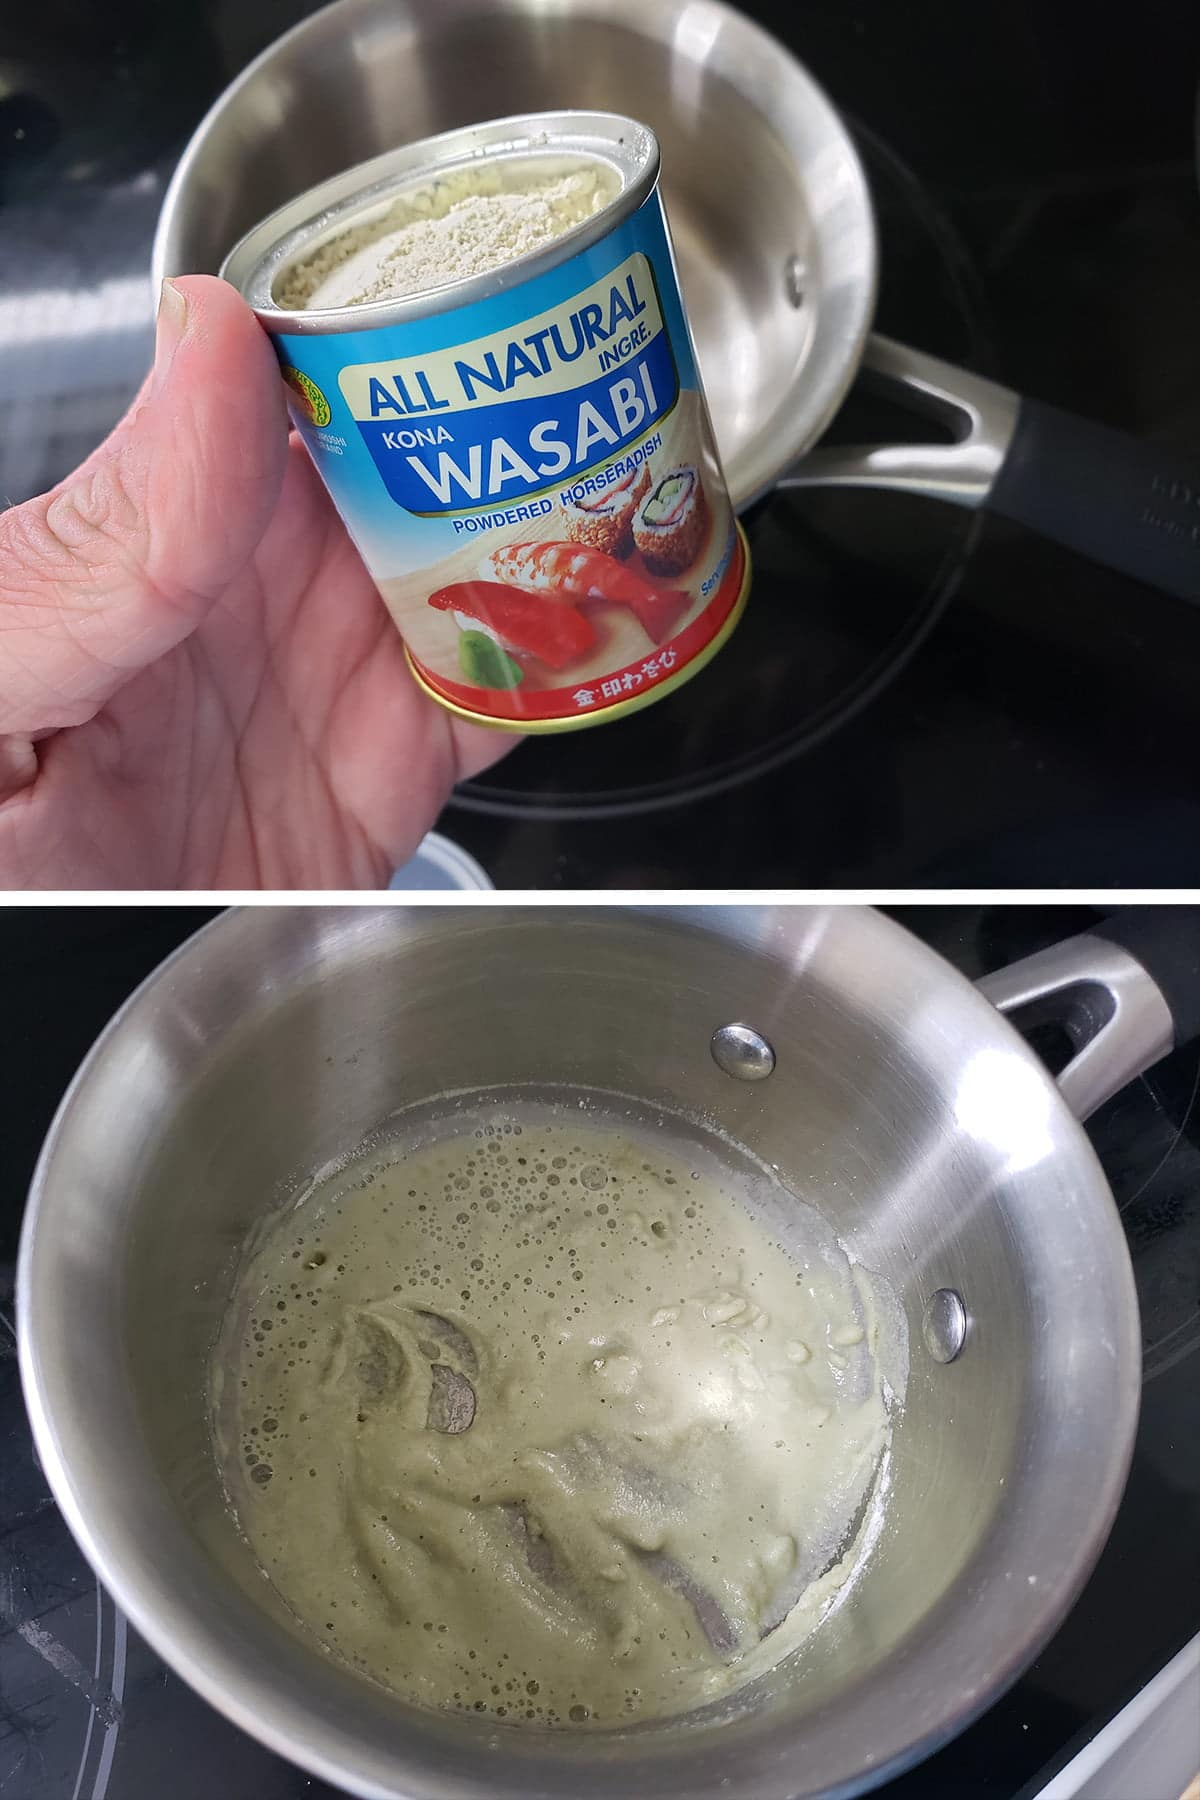 A two part compilation image showing a hand holding a canister of wasabi powder in the top image, and the powder having been mixed into a paste in the second image.